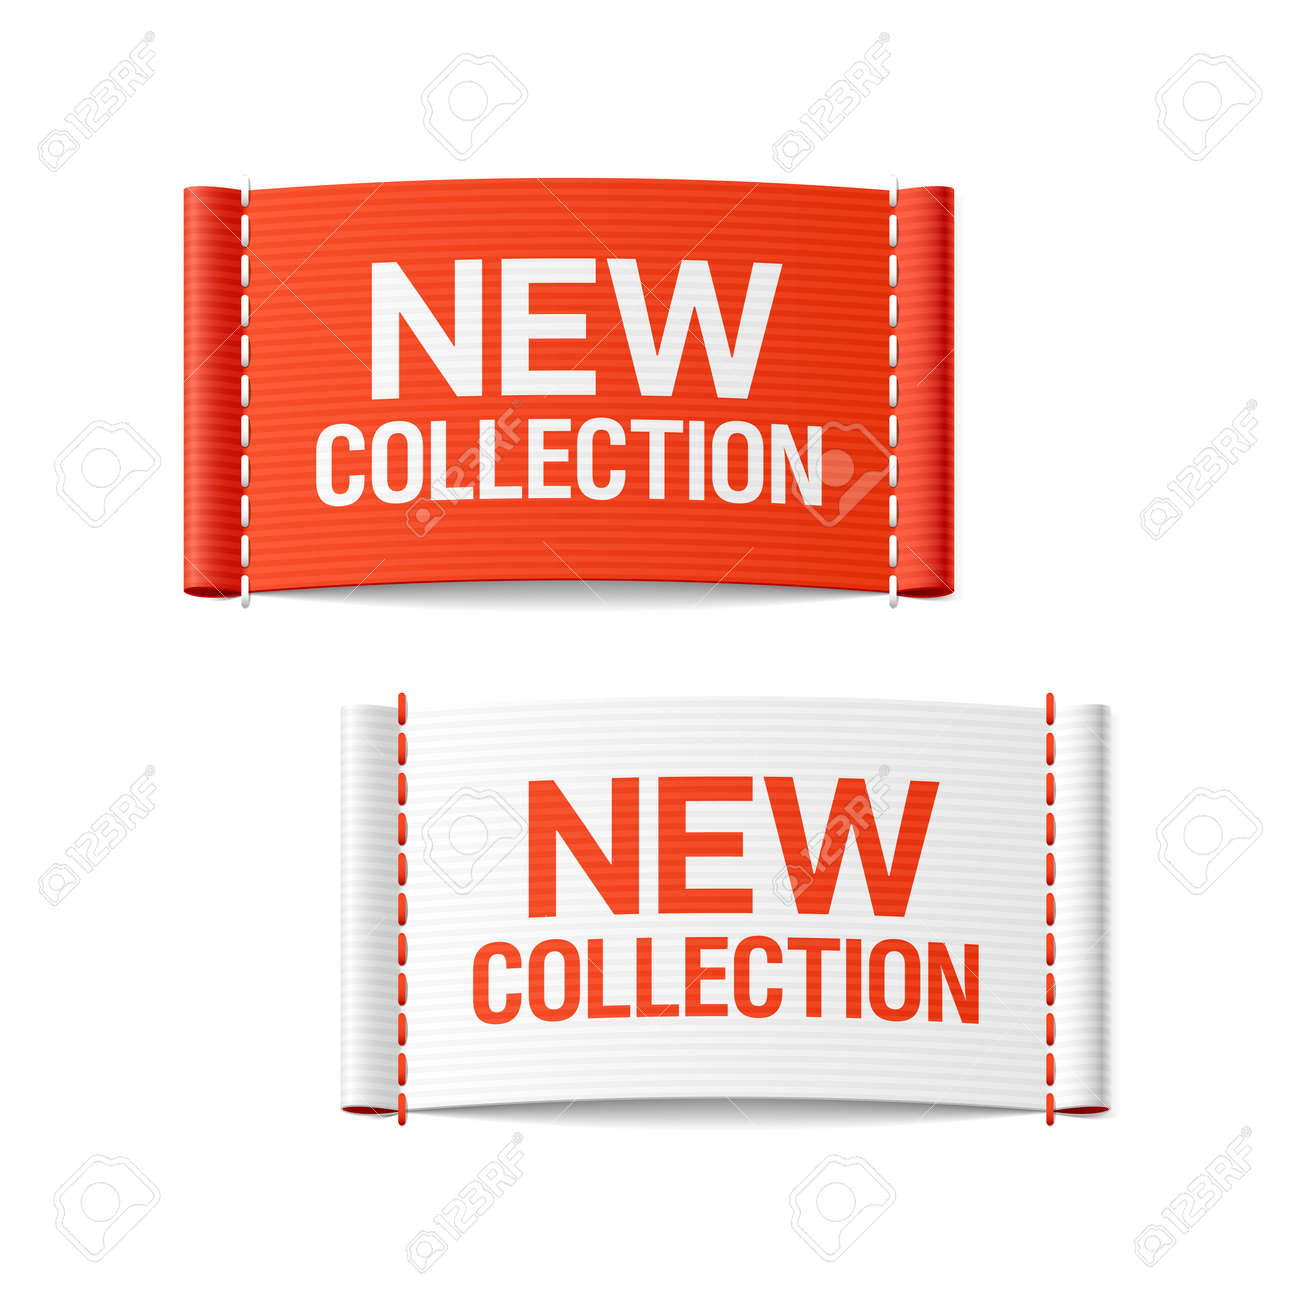 New collection clothing labels - 23796320